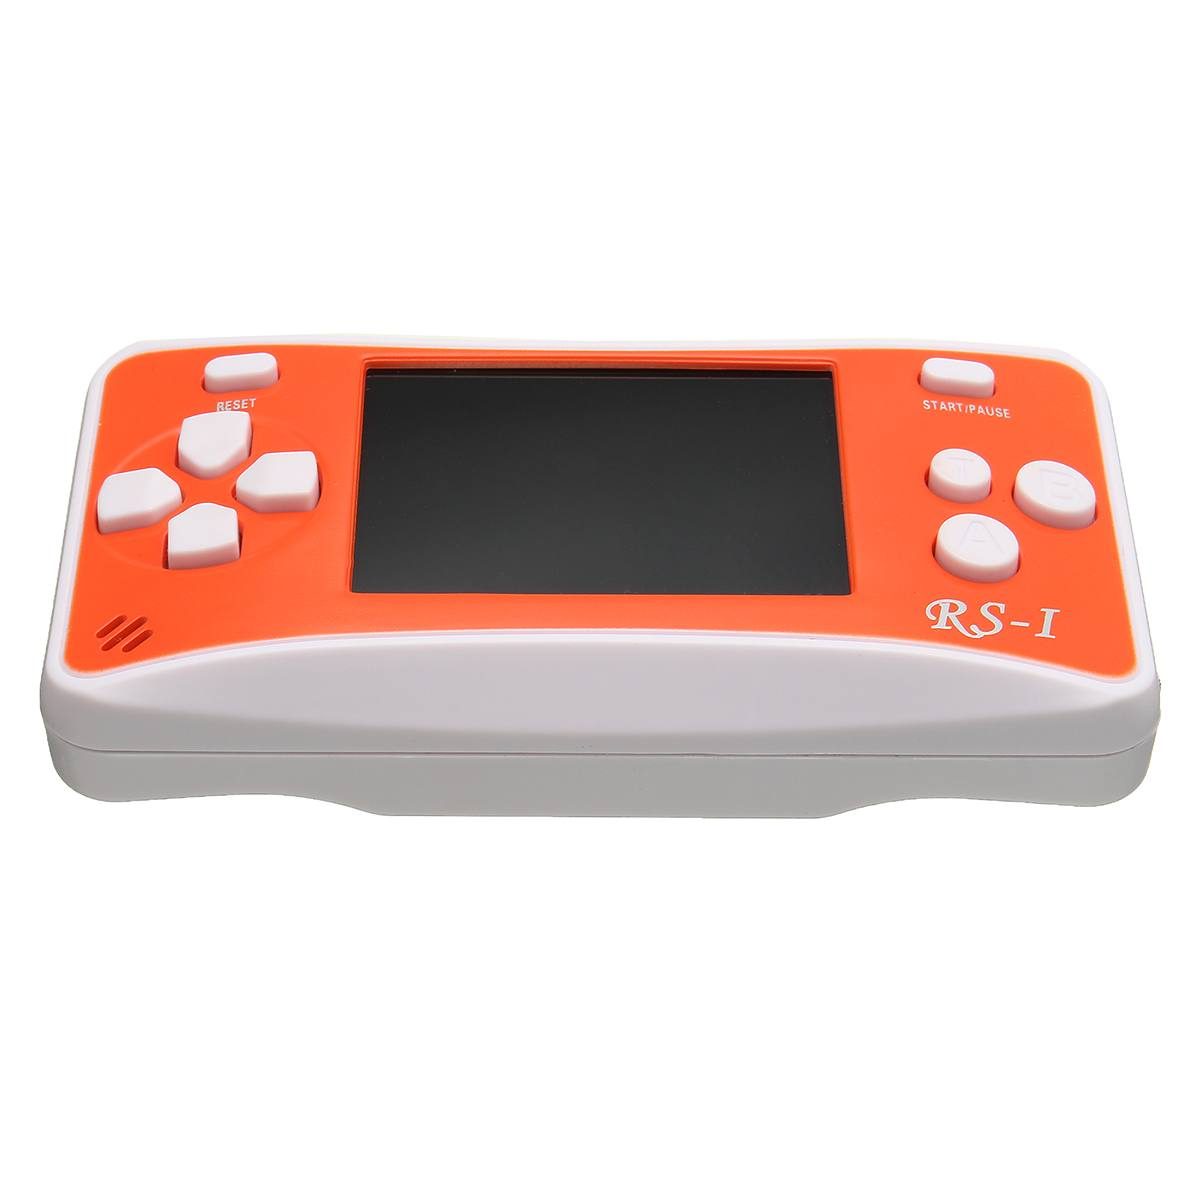 ShirLin  Mini Handheld Game Console Portable Video Game Player LCD Enhanced Back BUILT IN 152 GAMES for Kids Gift